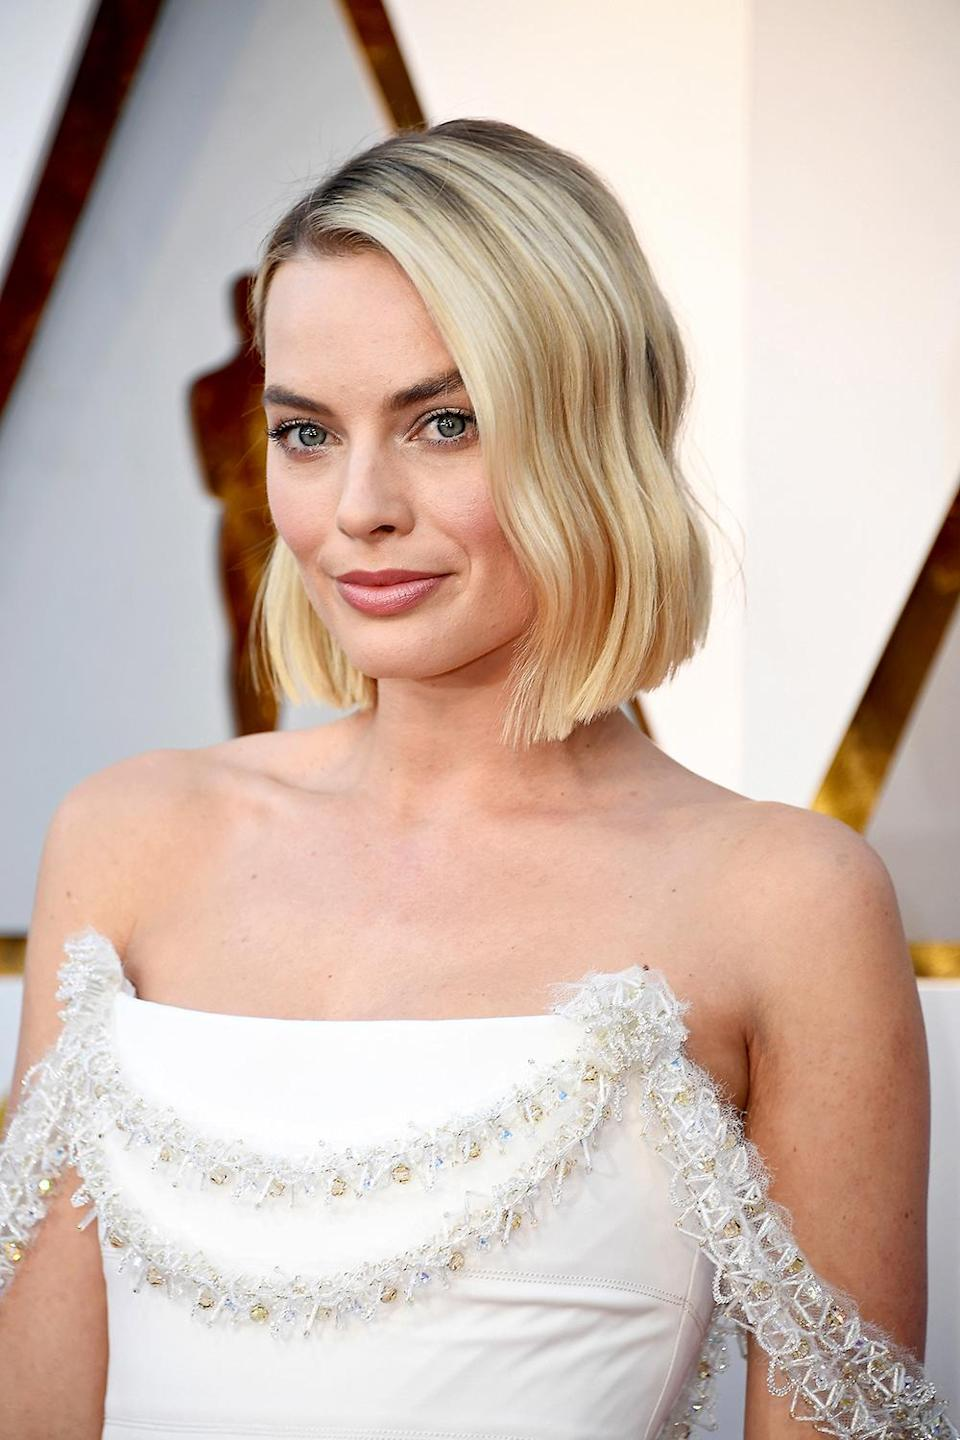 Margot Robbie had some issues with her Chanel dress. (Photo: Frazer Harrison/Getty Images)